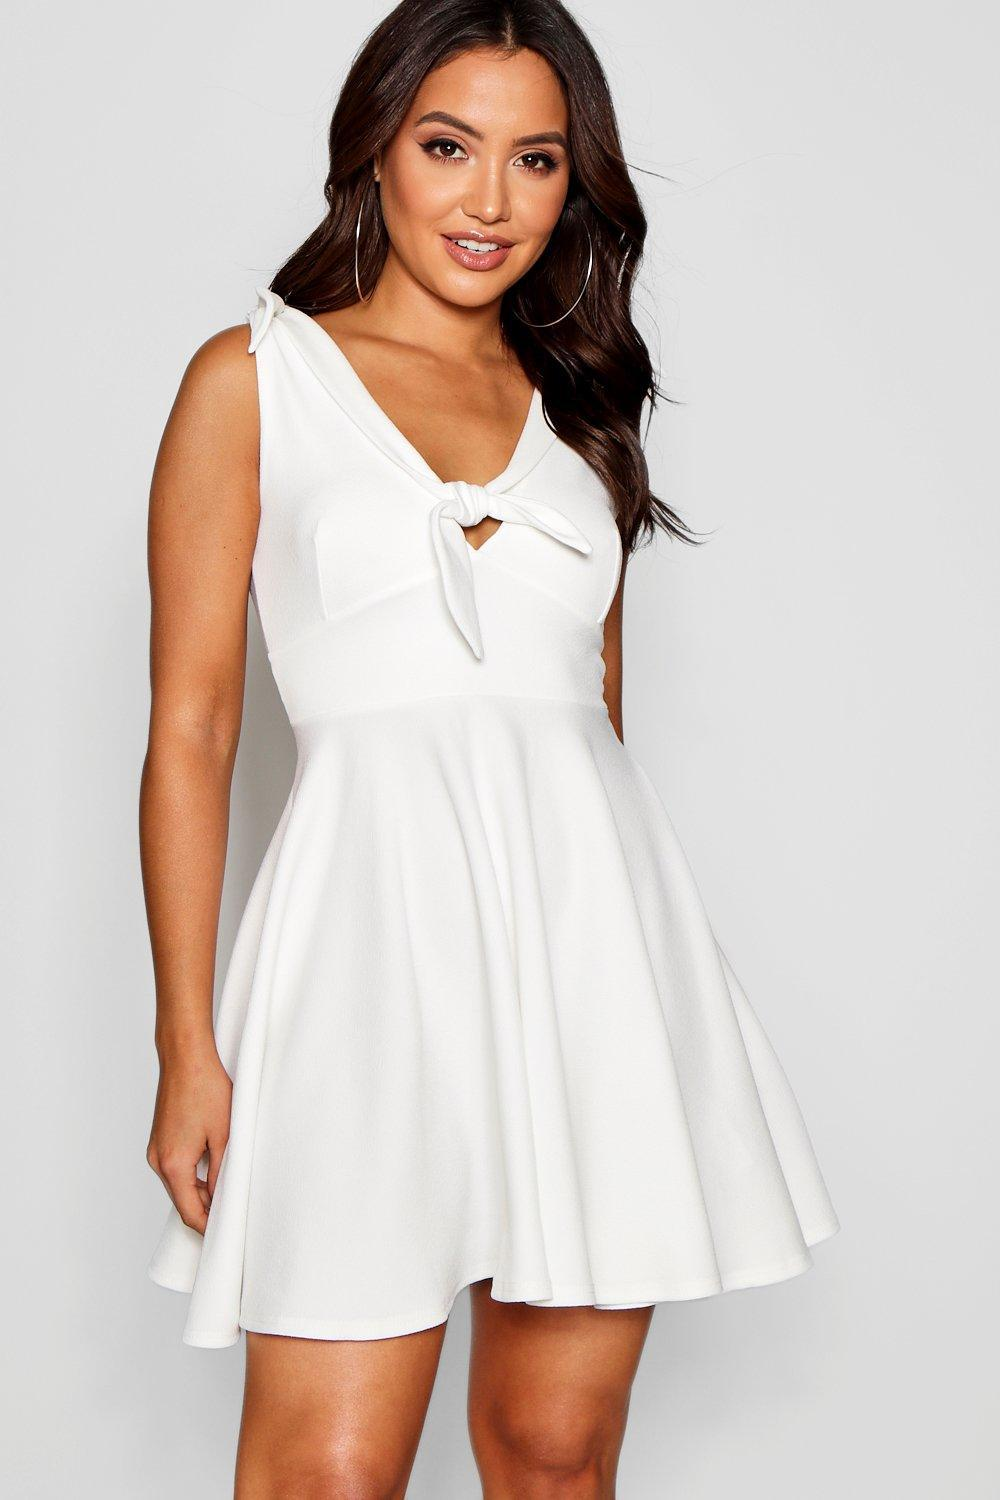 Lyst - Boohoo Knot Front Skater Dress in White d14235ace